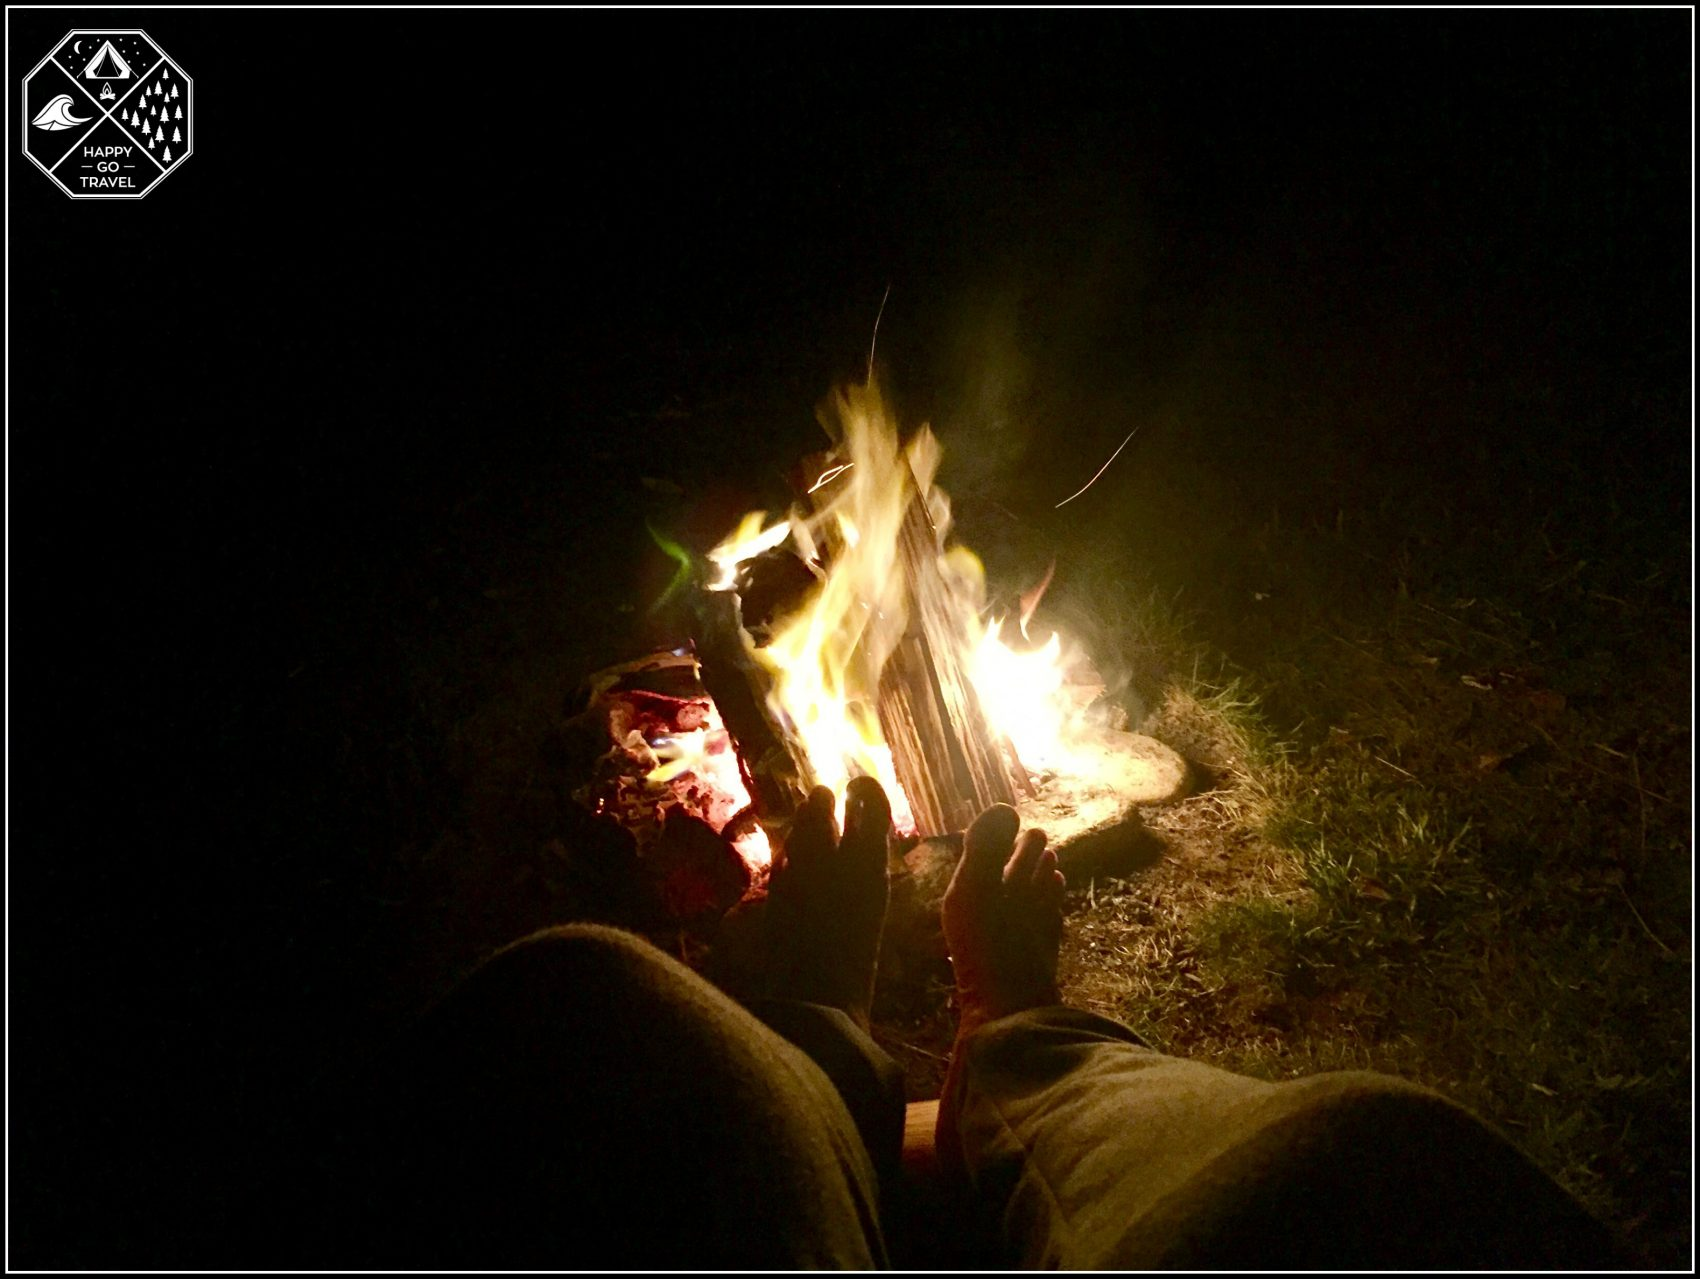 Staying Warm beside the campfire at Ngarigo Campground in the Kosciuszko National Park